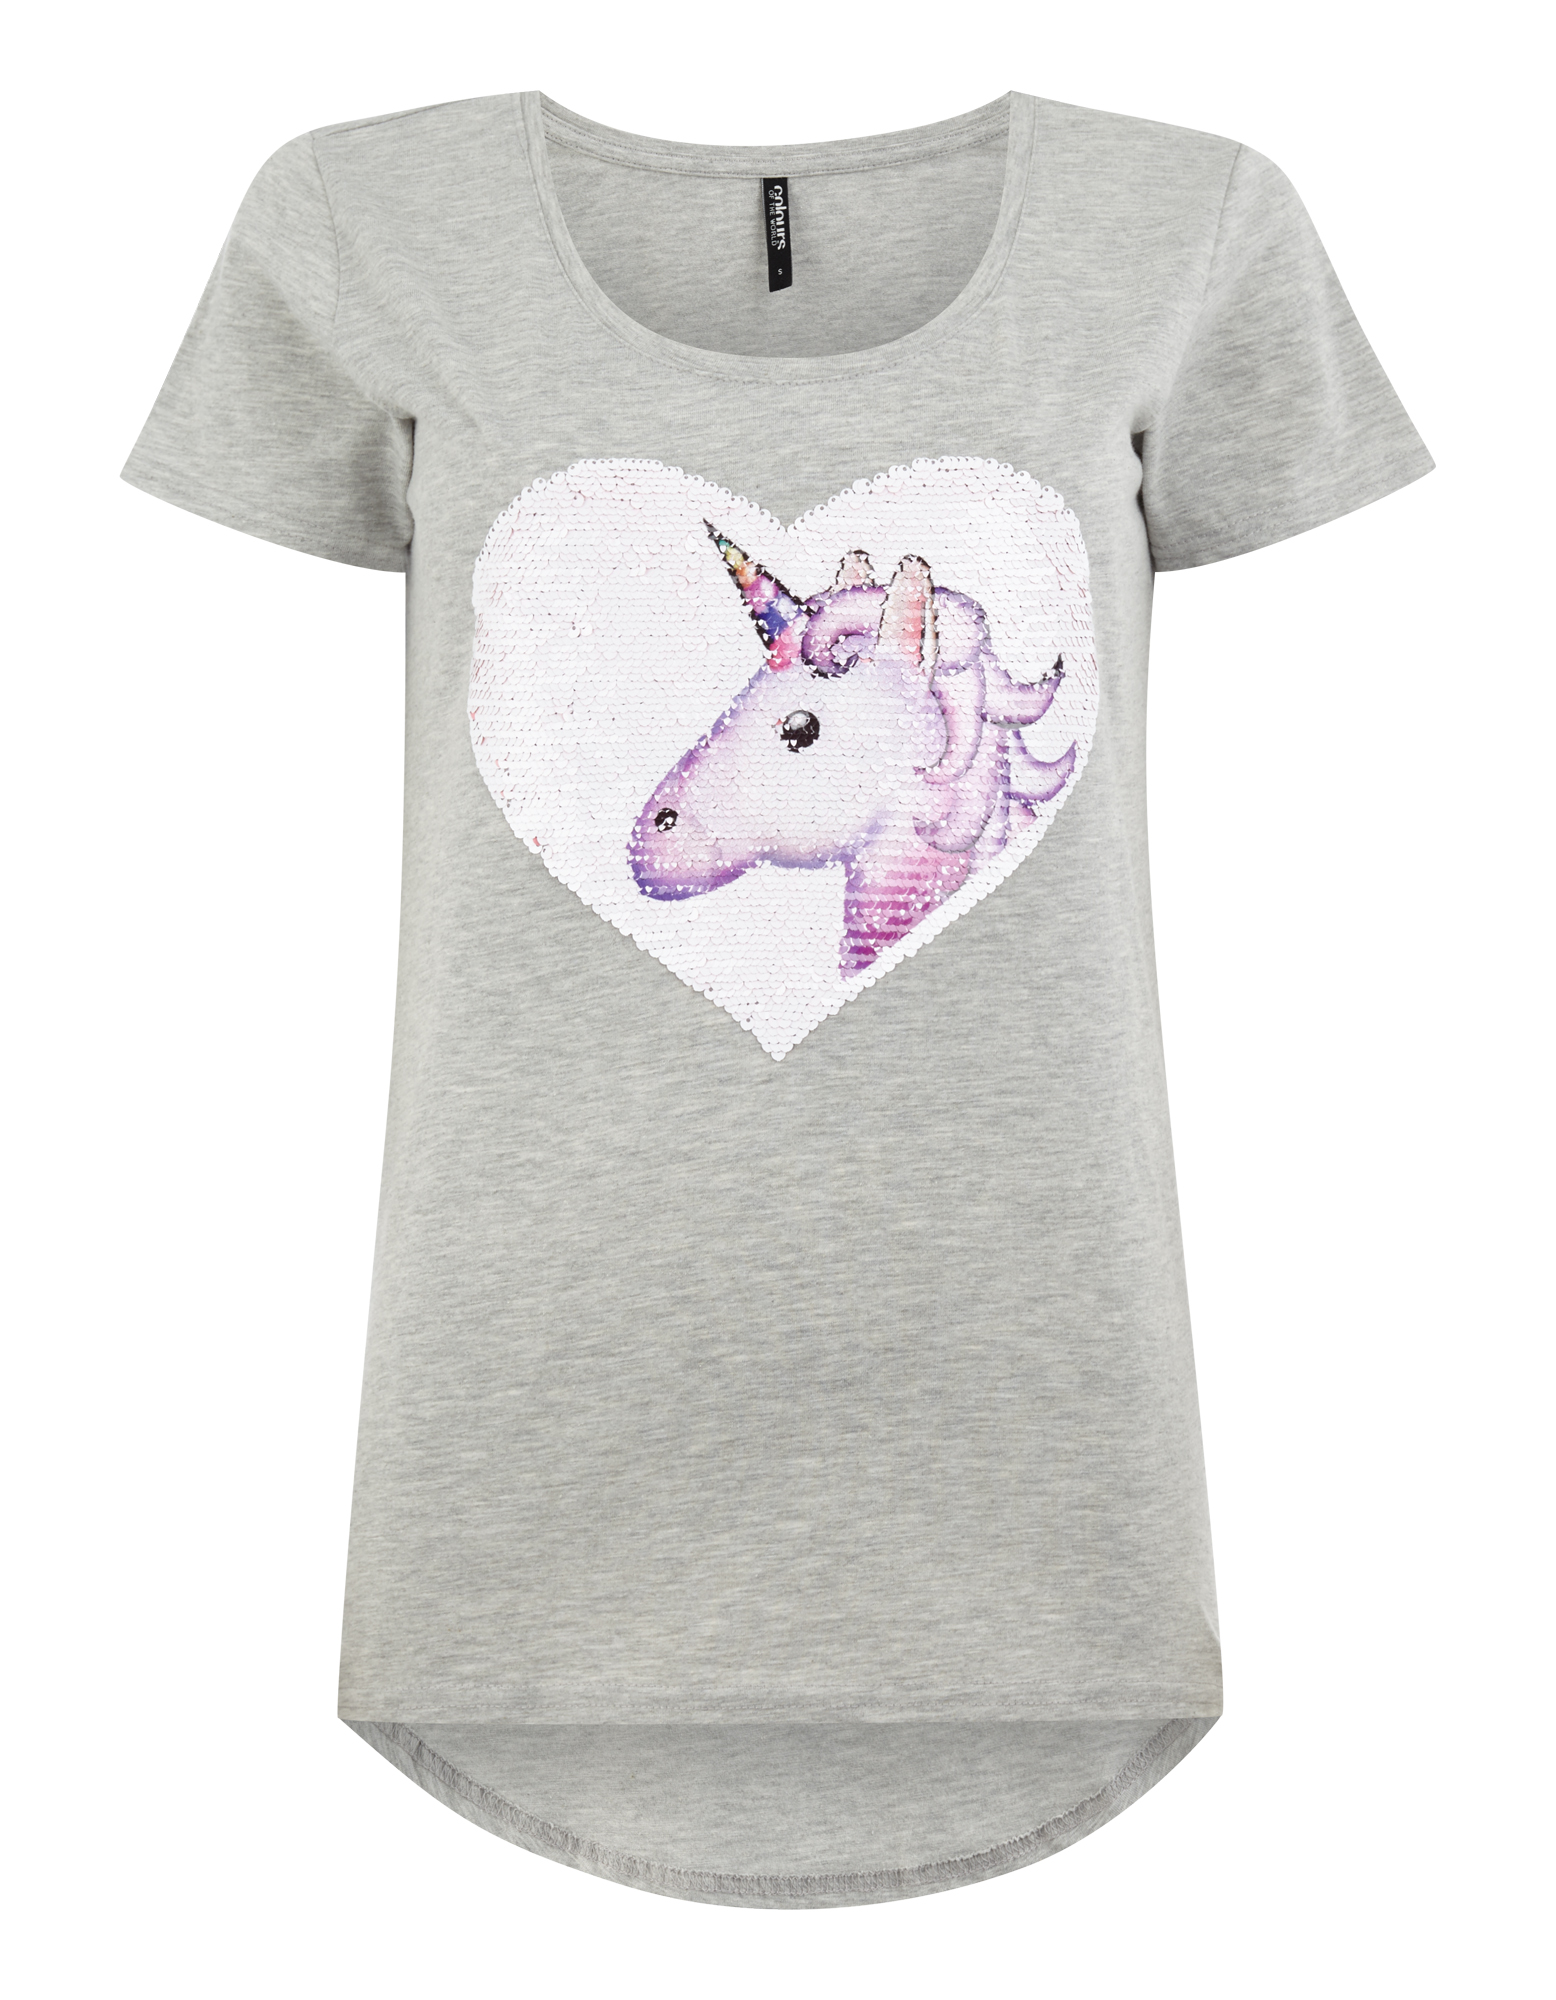 damen t shirt mit einhorn motiv aus wende pailletten. Black Bedroom Furniture Sets. Home Design Ideas